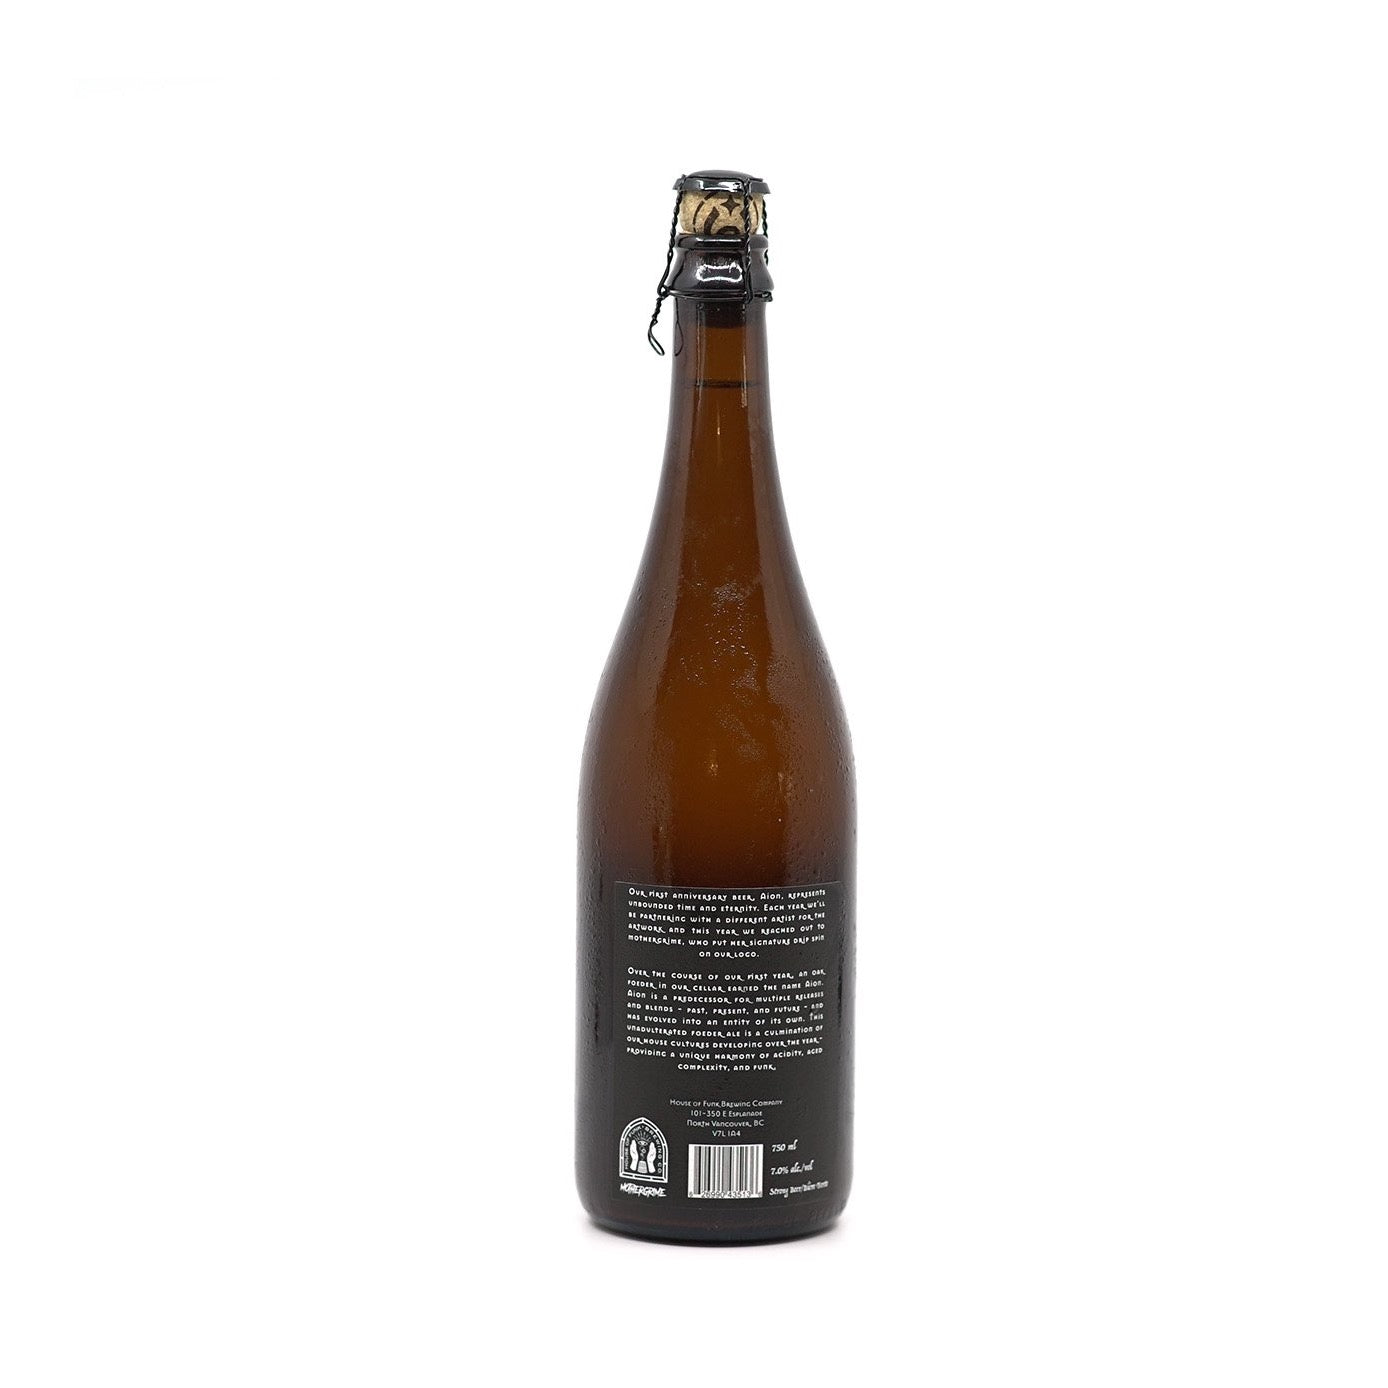 AION // Farmhouse Ale Aged in Oak Foeder (7.0%) - 750ml